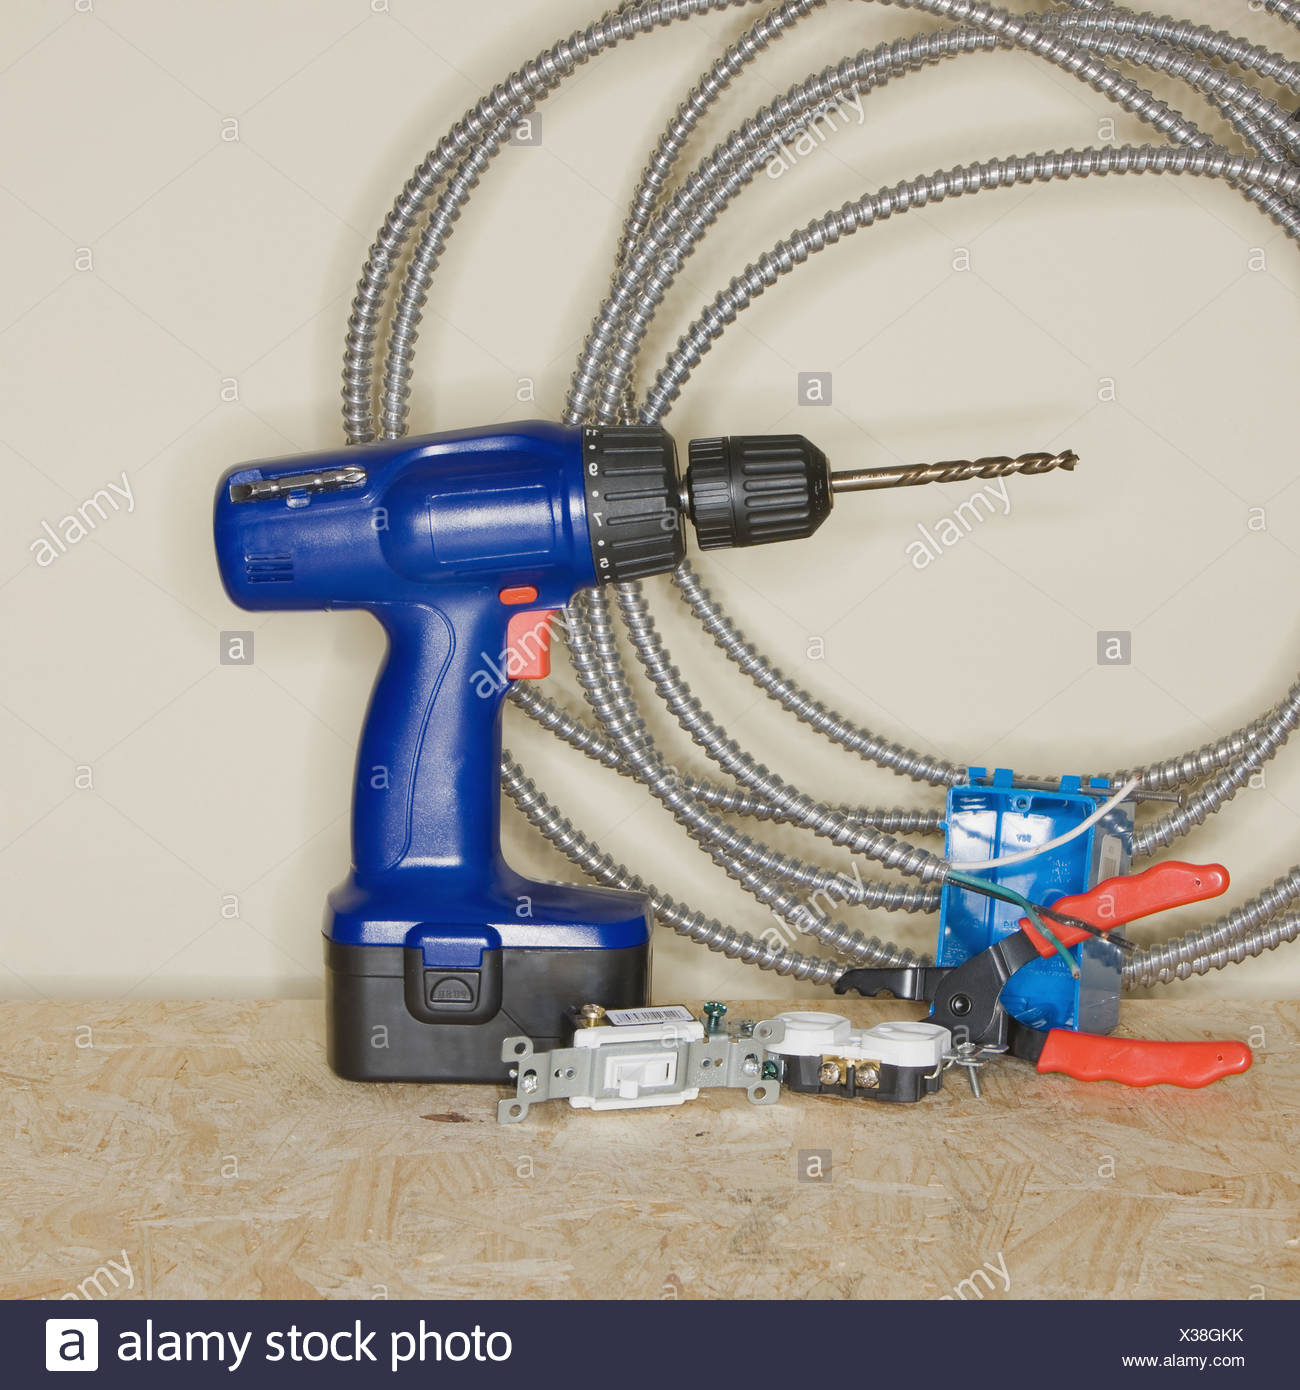 Cordless drill next to wire cutters and cable - Stock Image